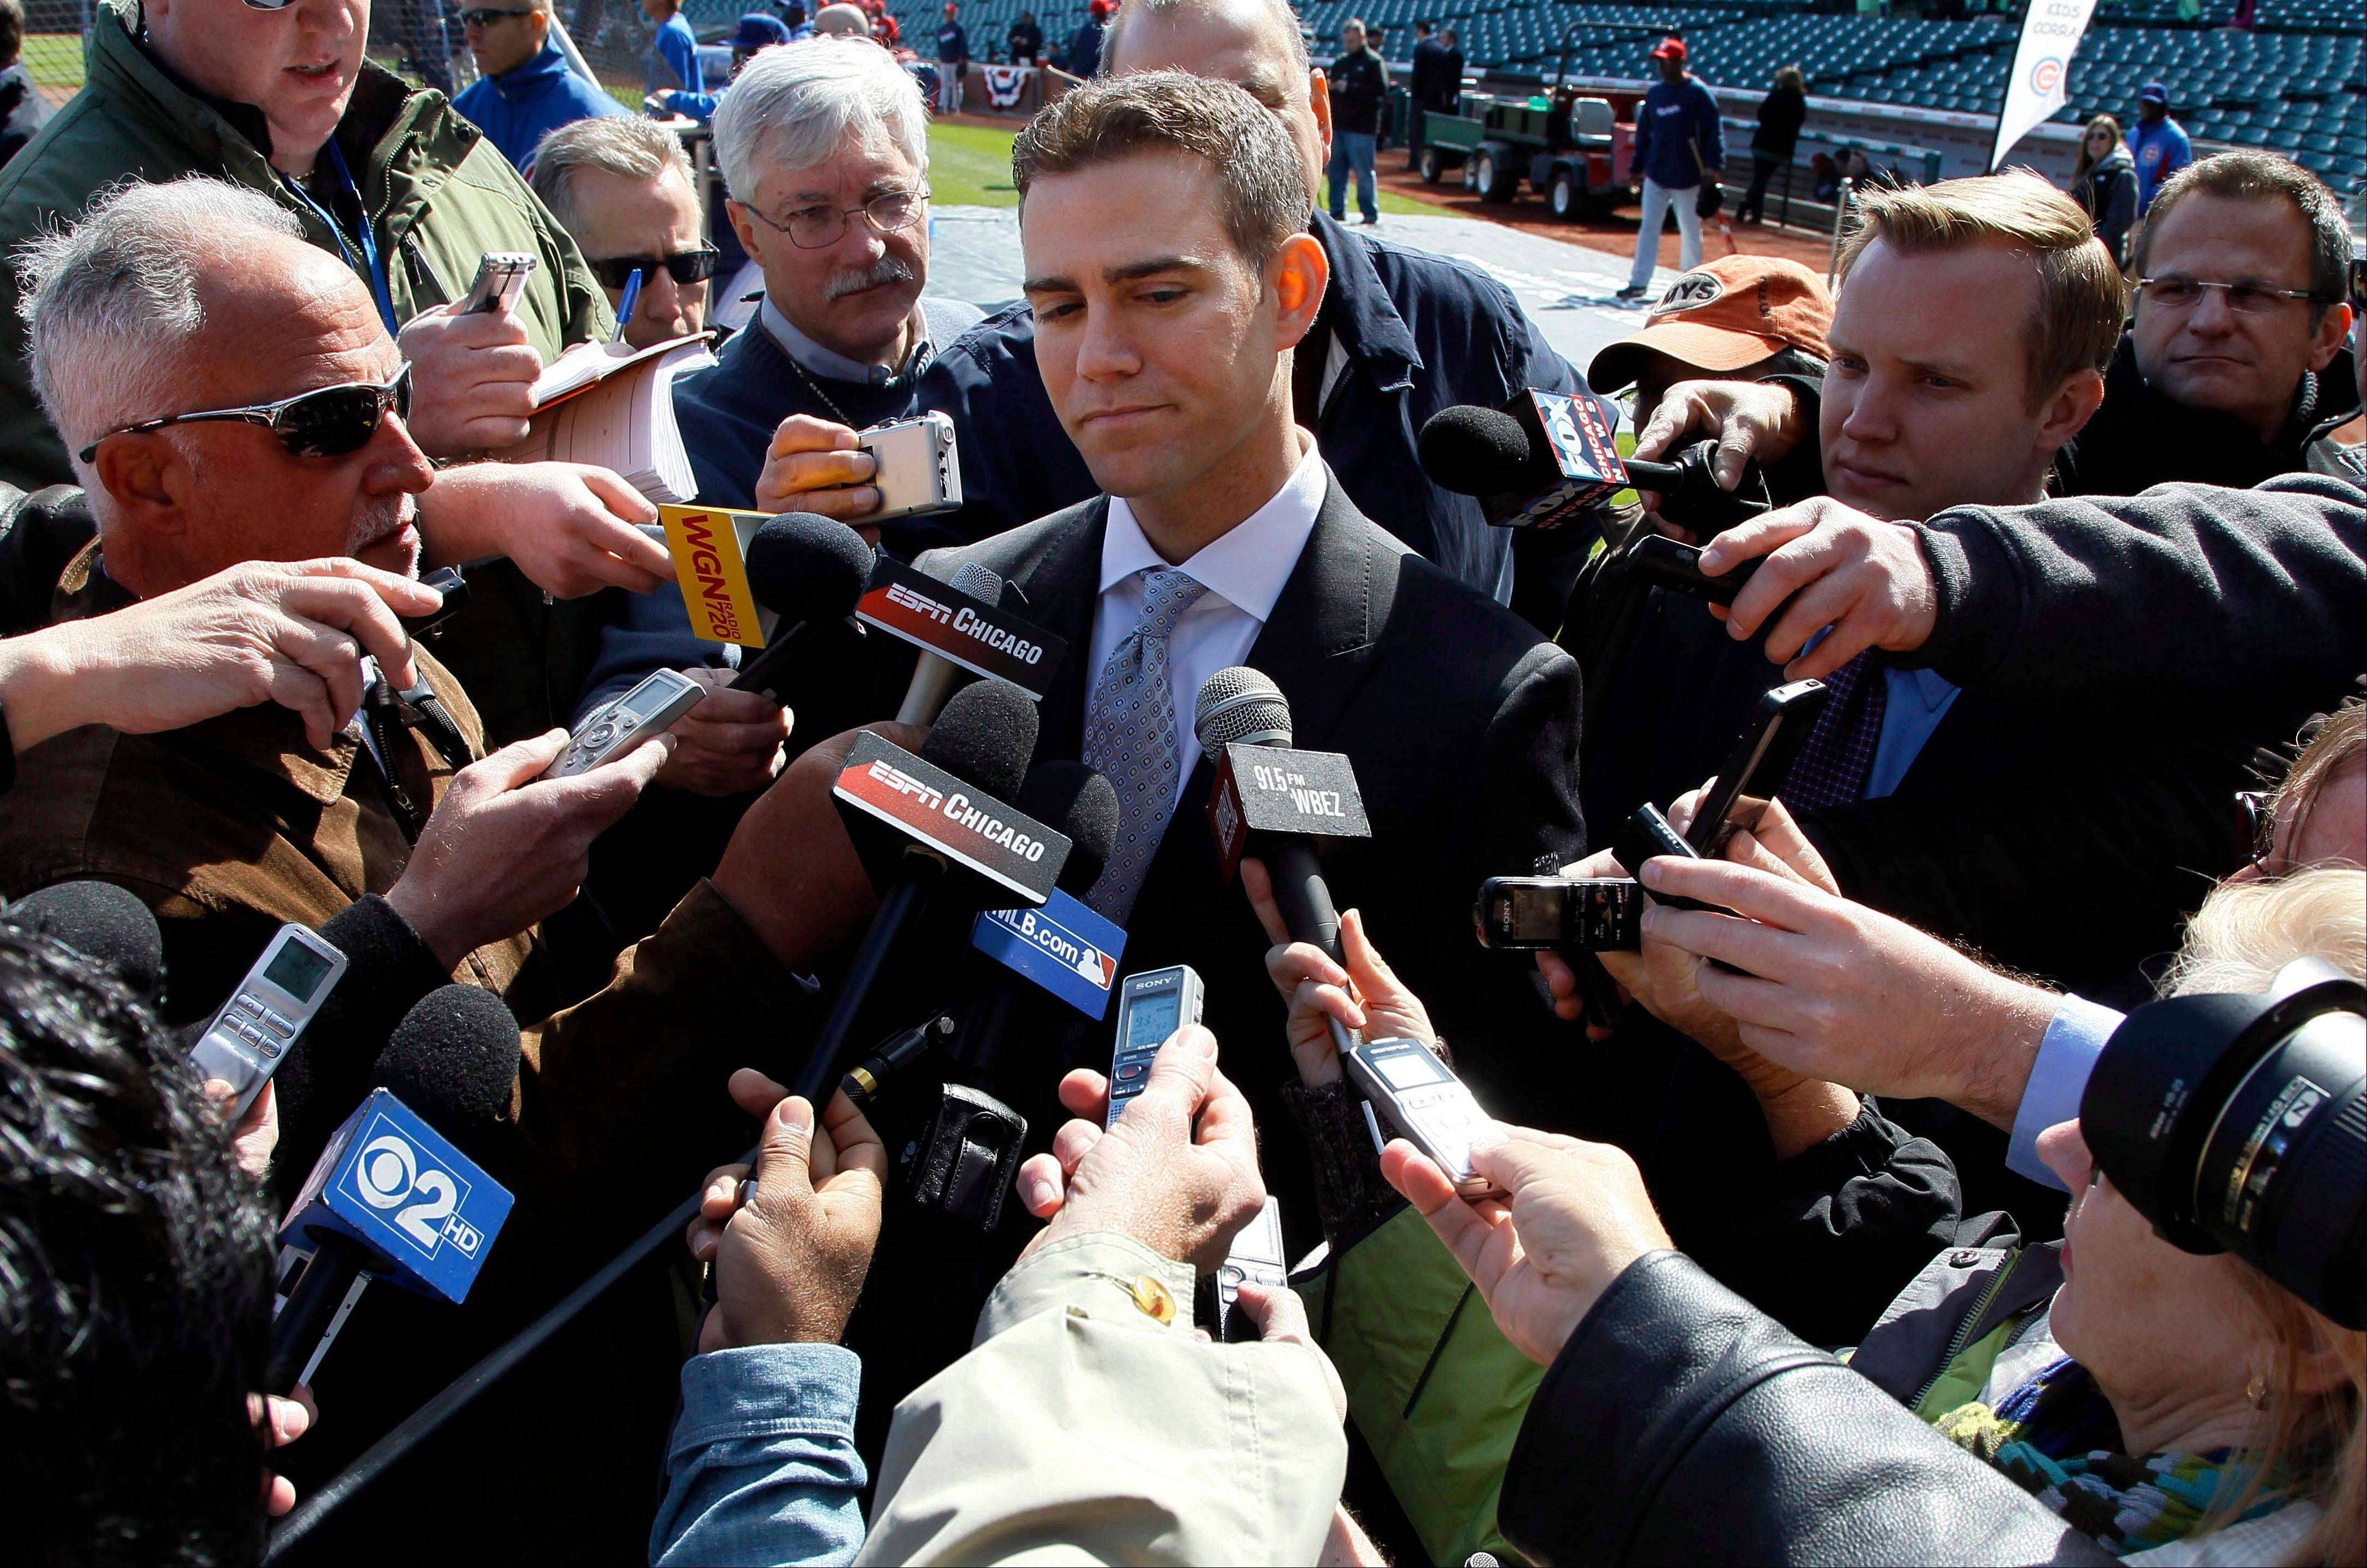 Cubs president Theo Epstein said Thursday he understands all the attention he gets as a symbol of Cubs, but he also hopes the focus will soon shift to the players on the field.